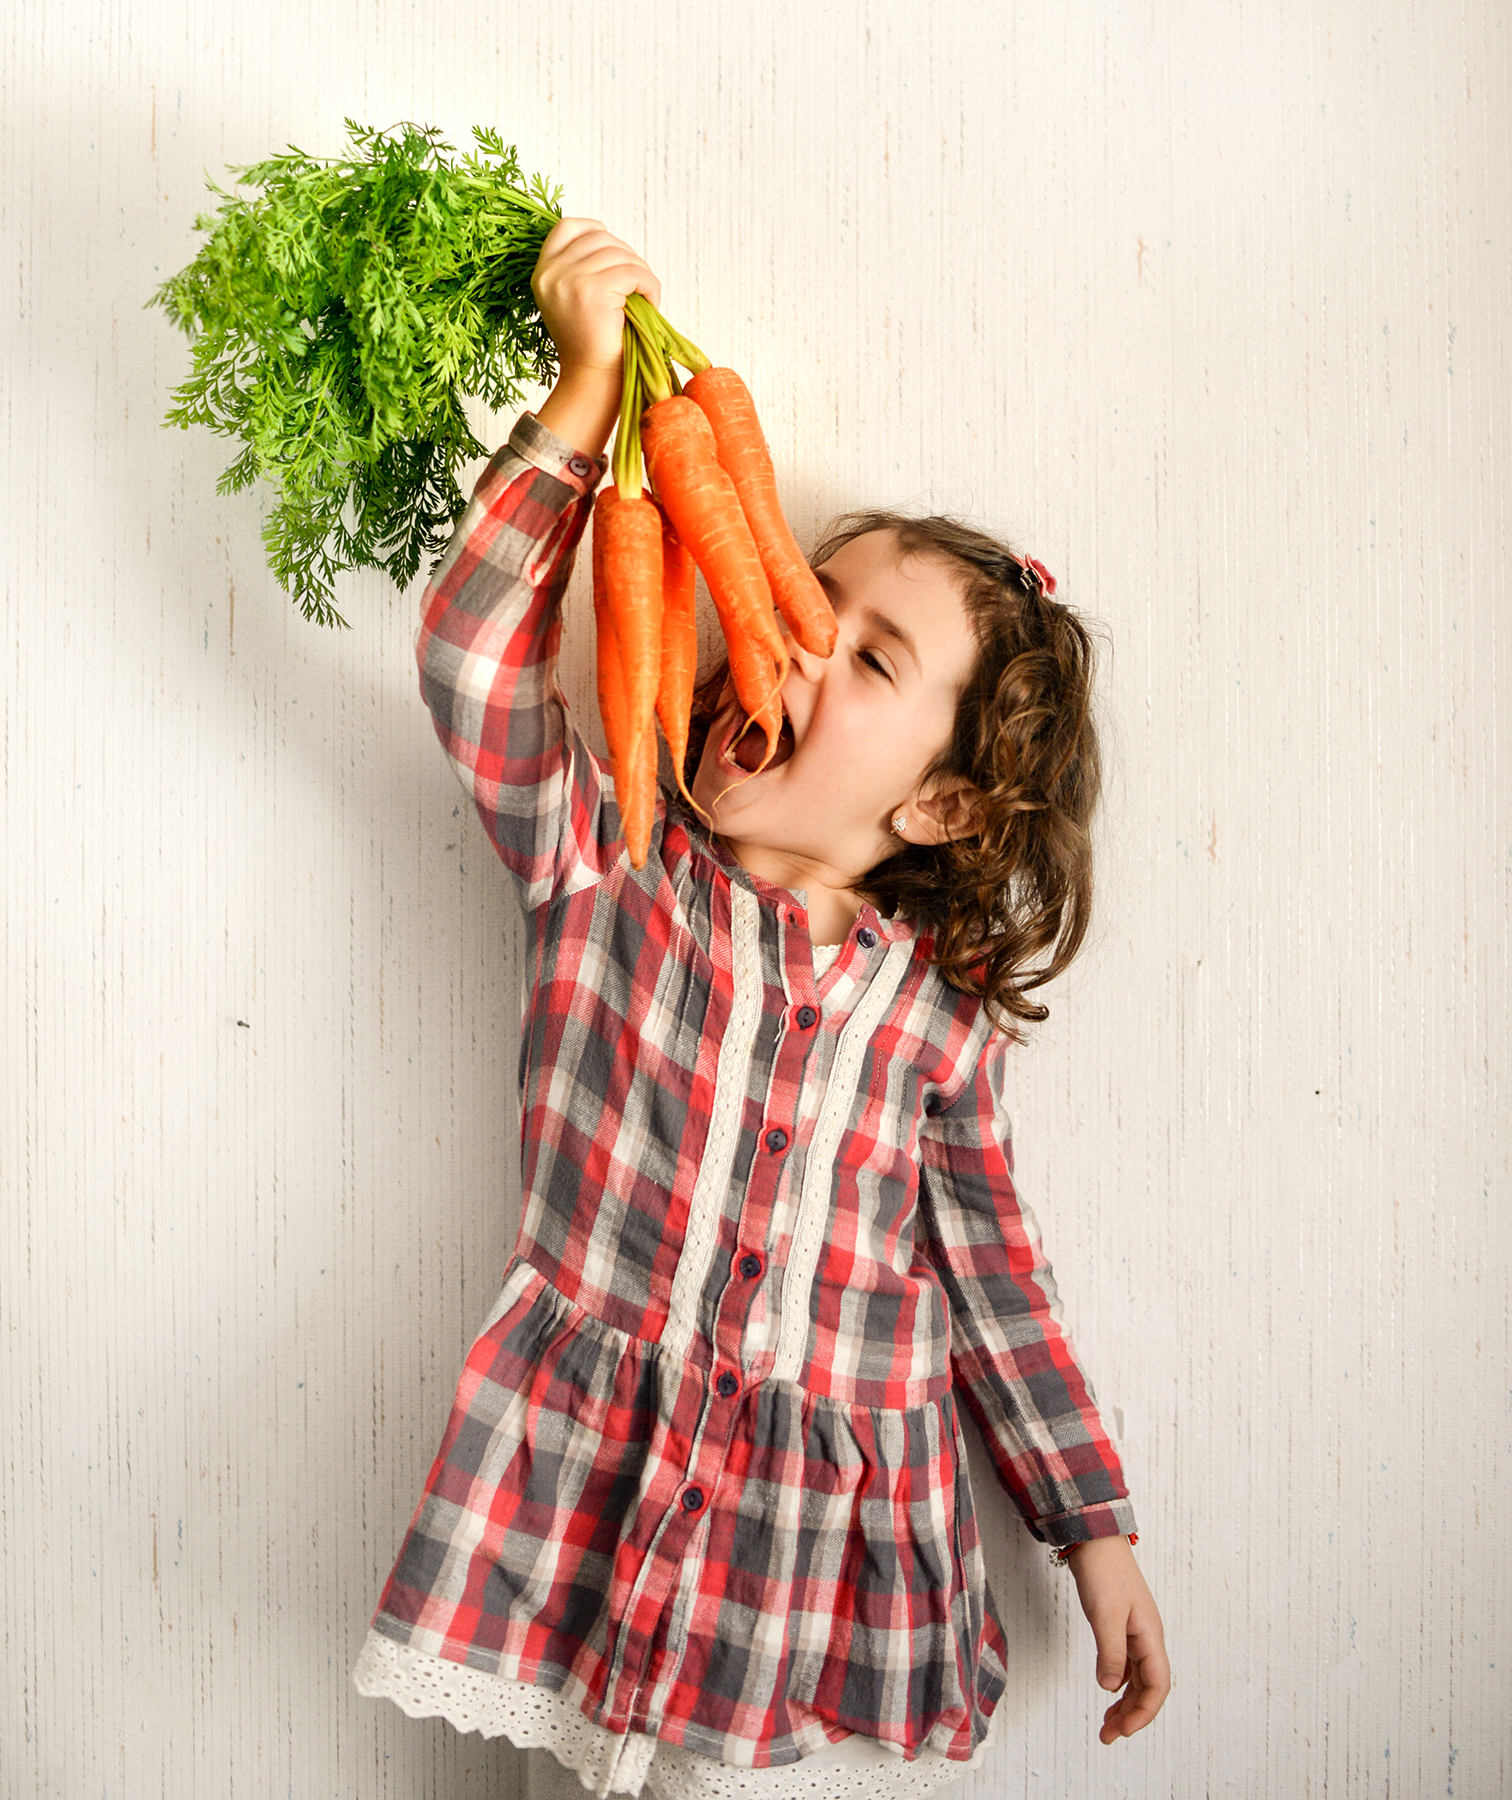 How I Finally Got My Kids to Eat Their Veggies—and Like It